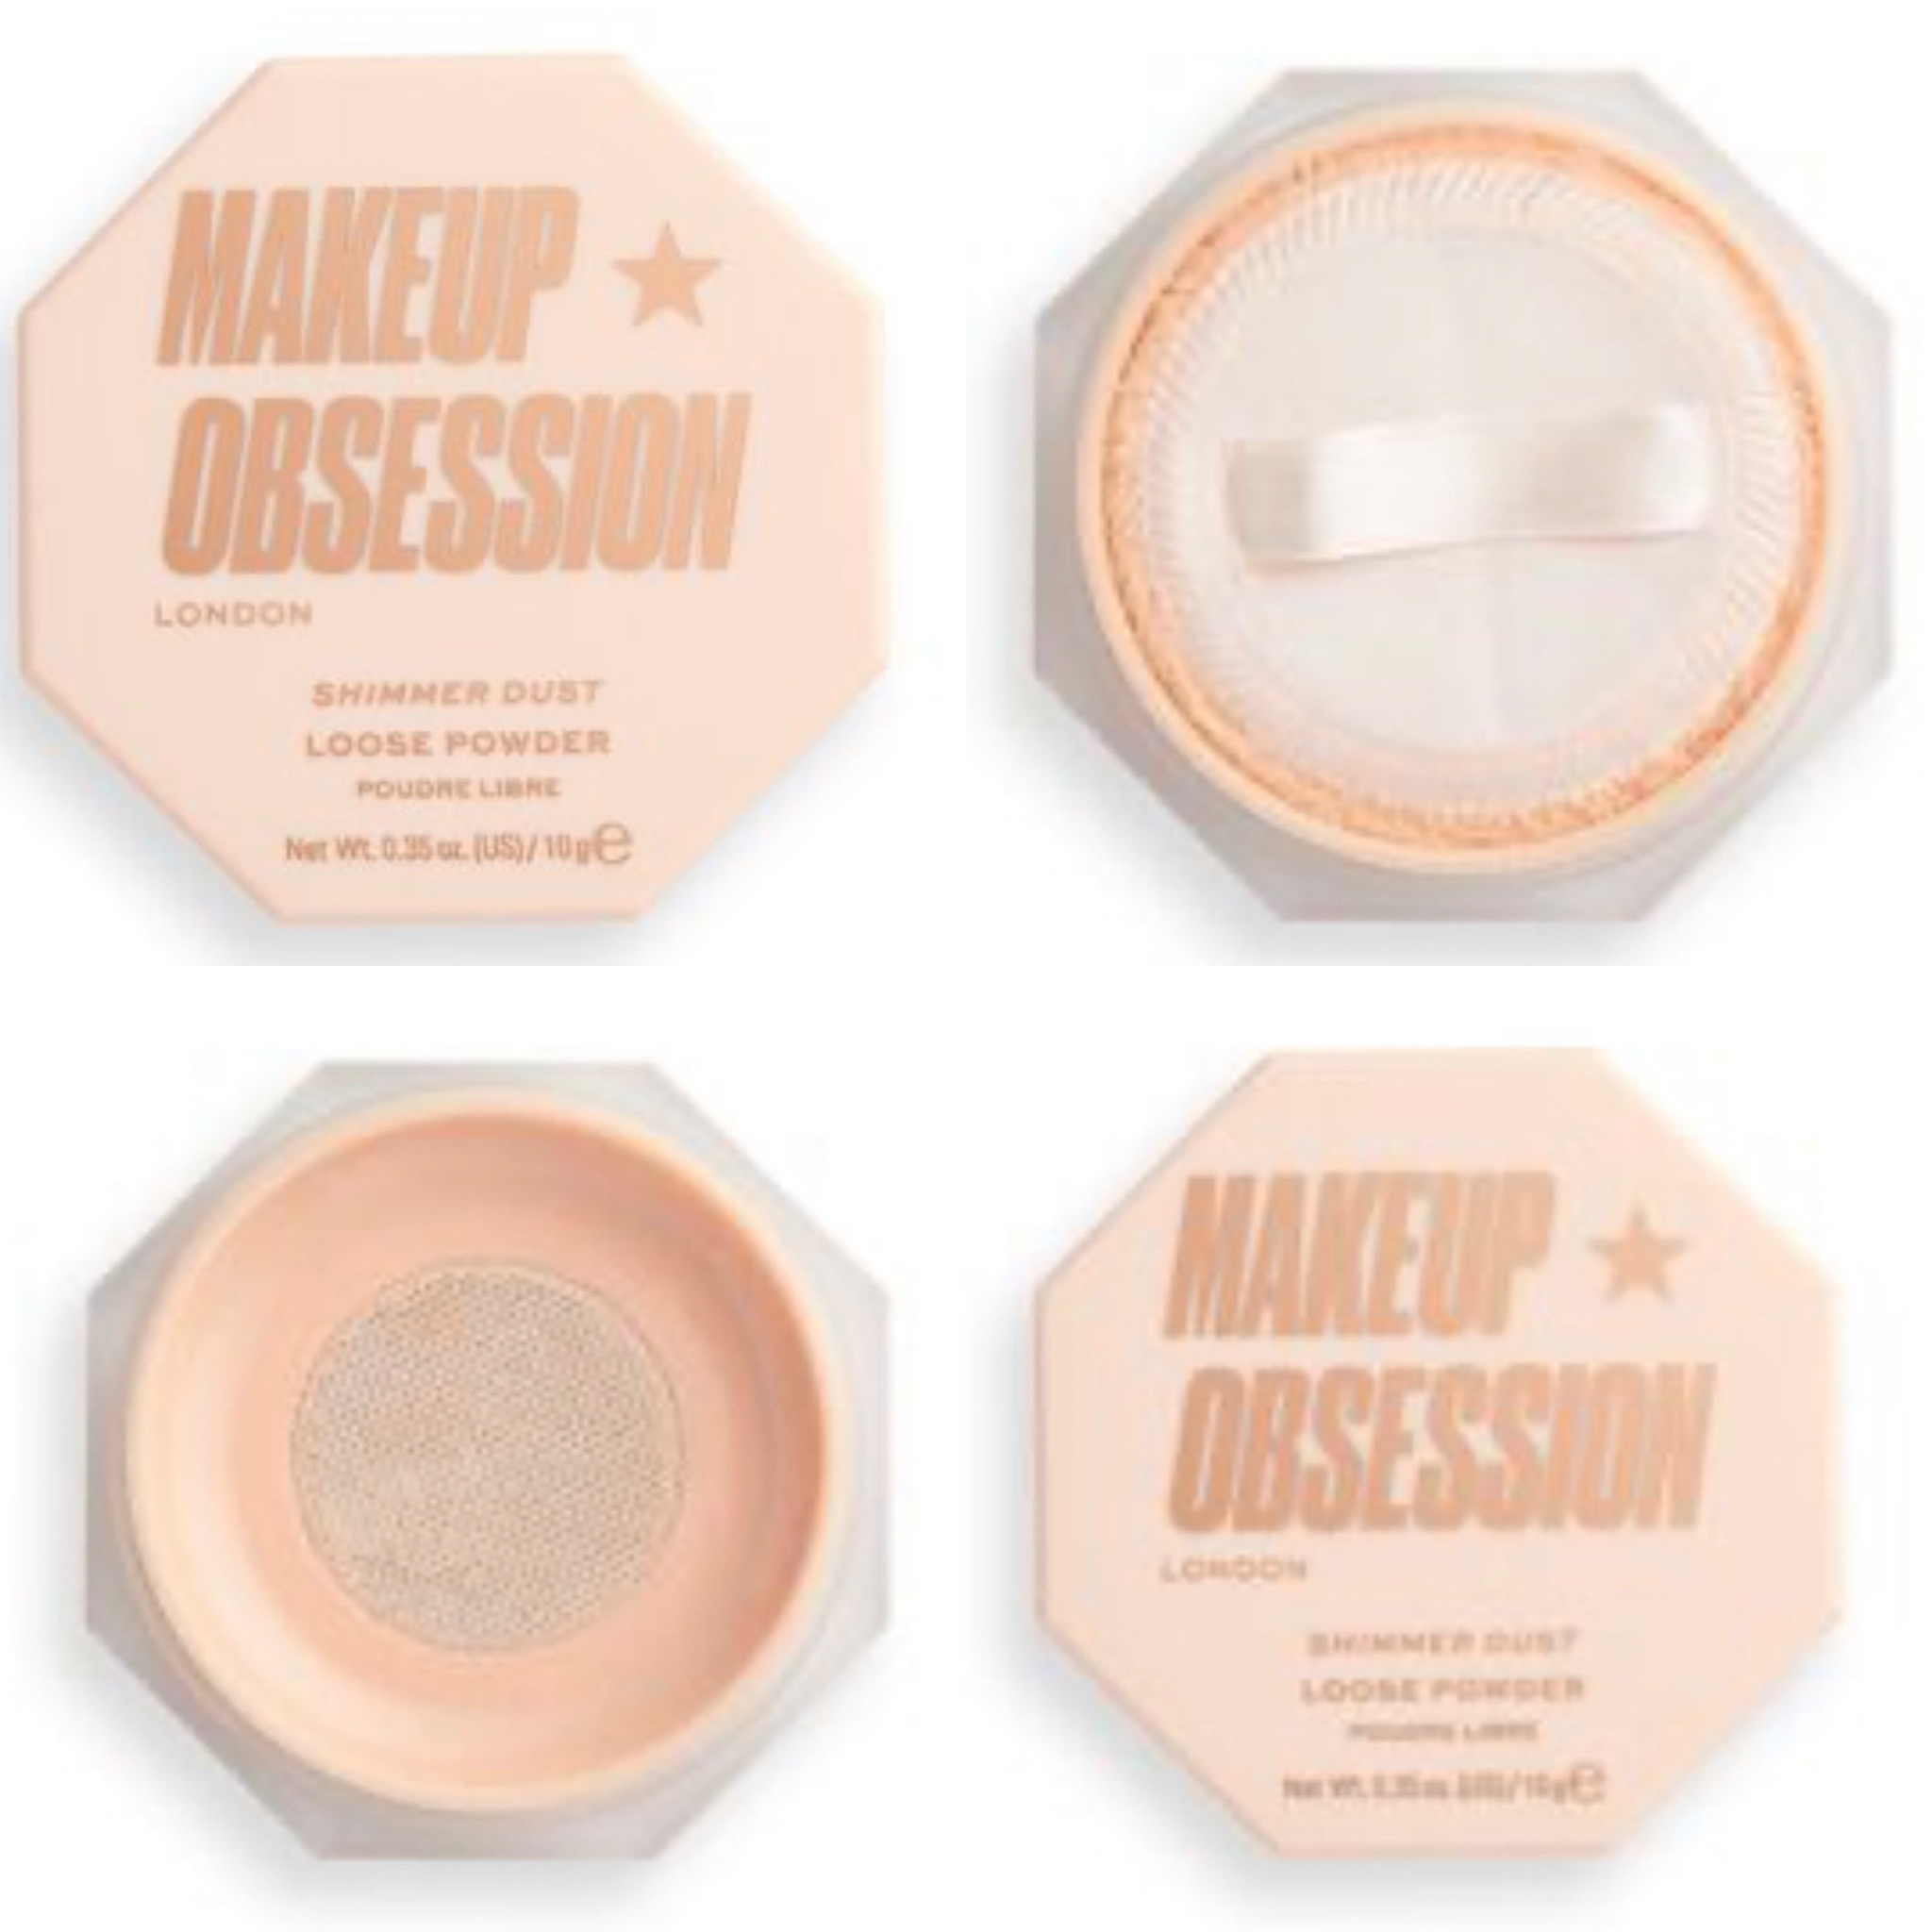 Makeup Obsession Shimmer Dust Loose Powder